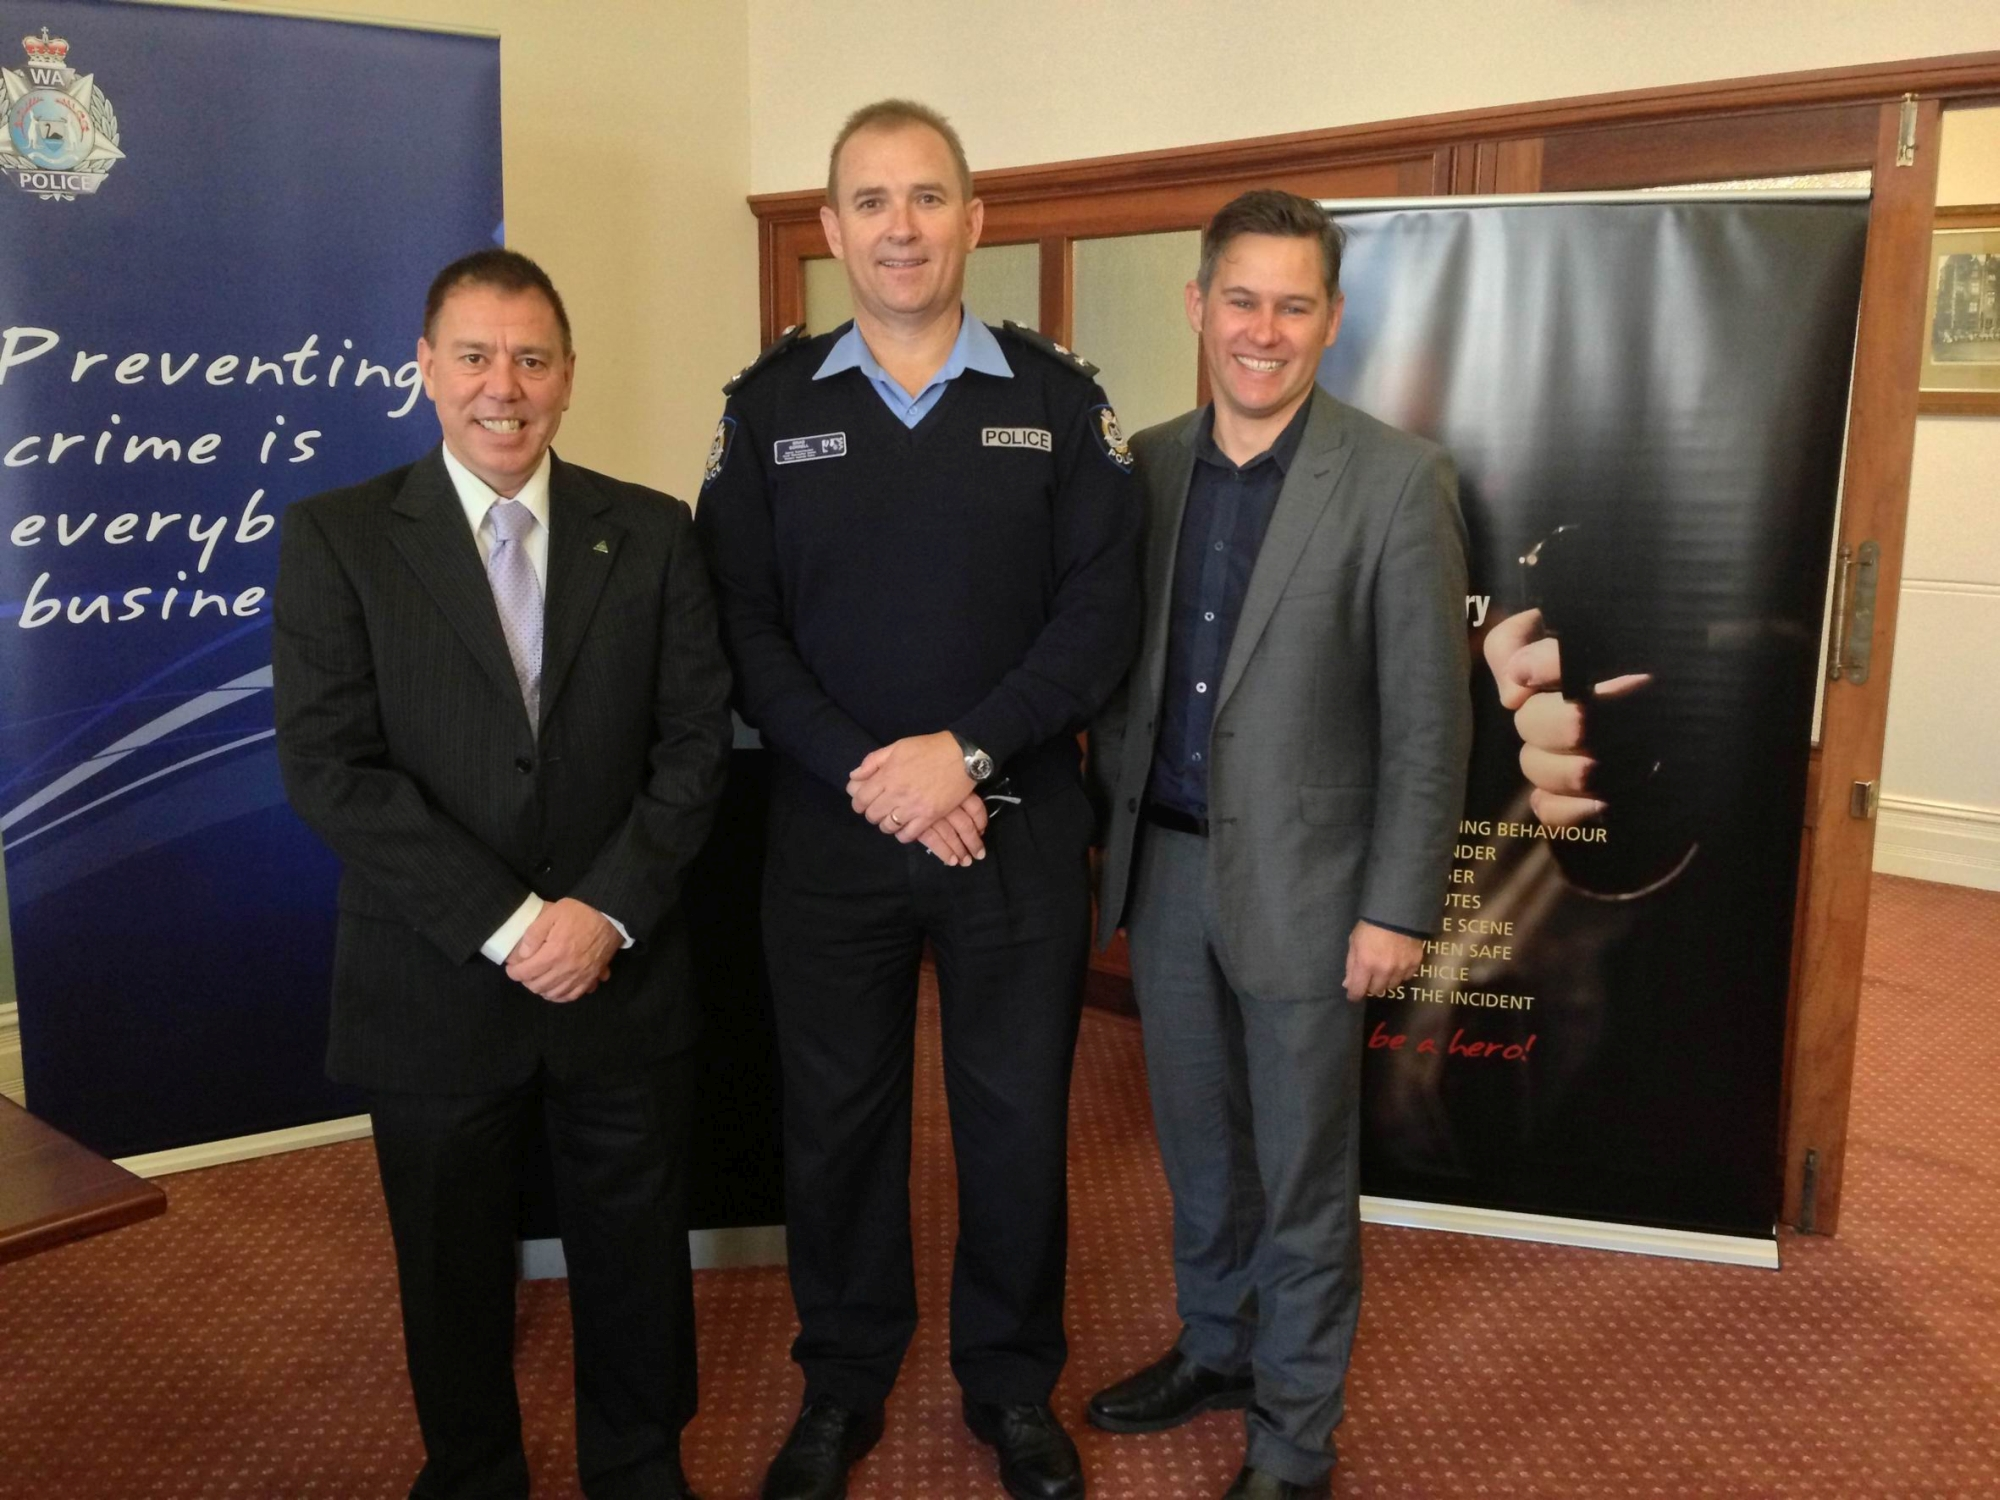 Tim Milsom, Brad Sorrell and Fremantle mayor Brad Pettitt at the launch of the new Business Beat initiative last week.